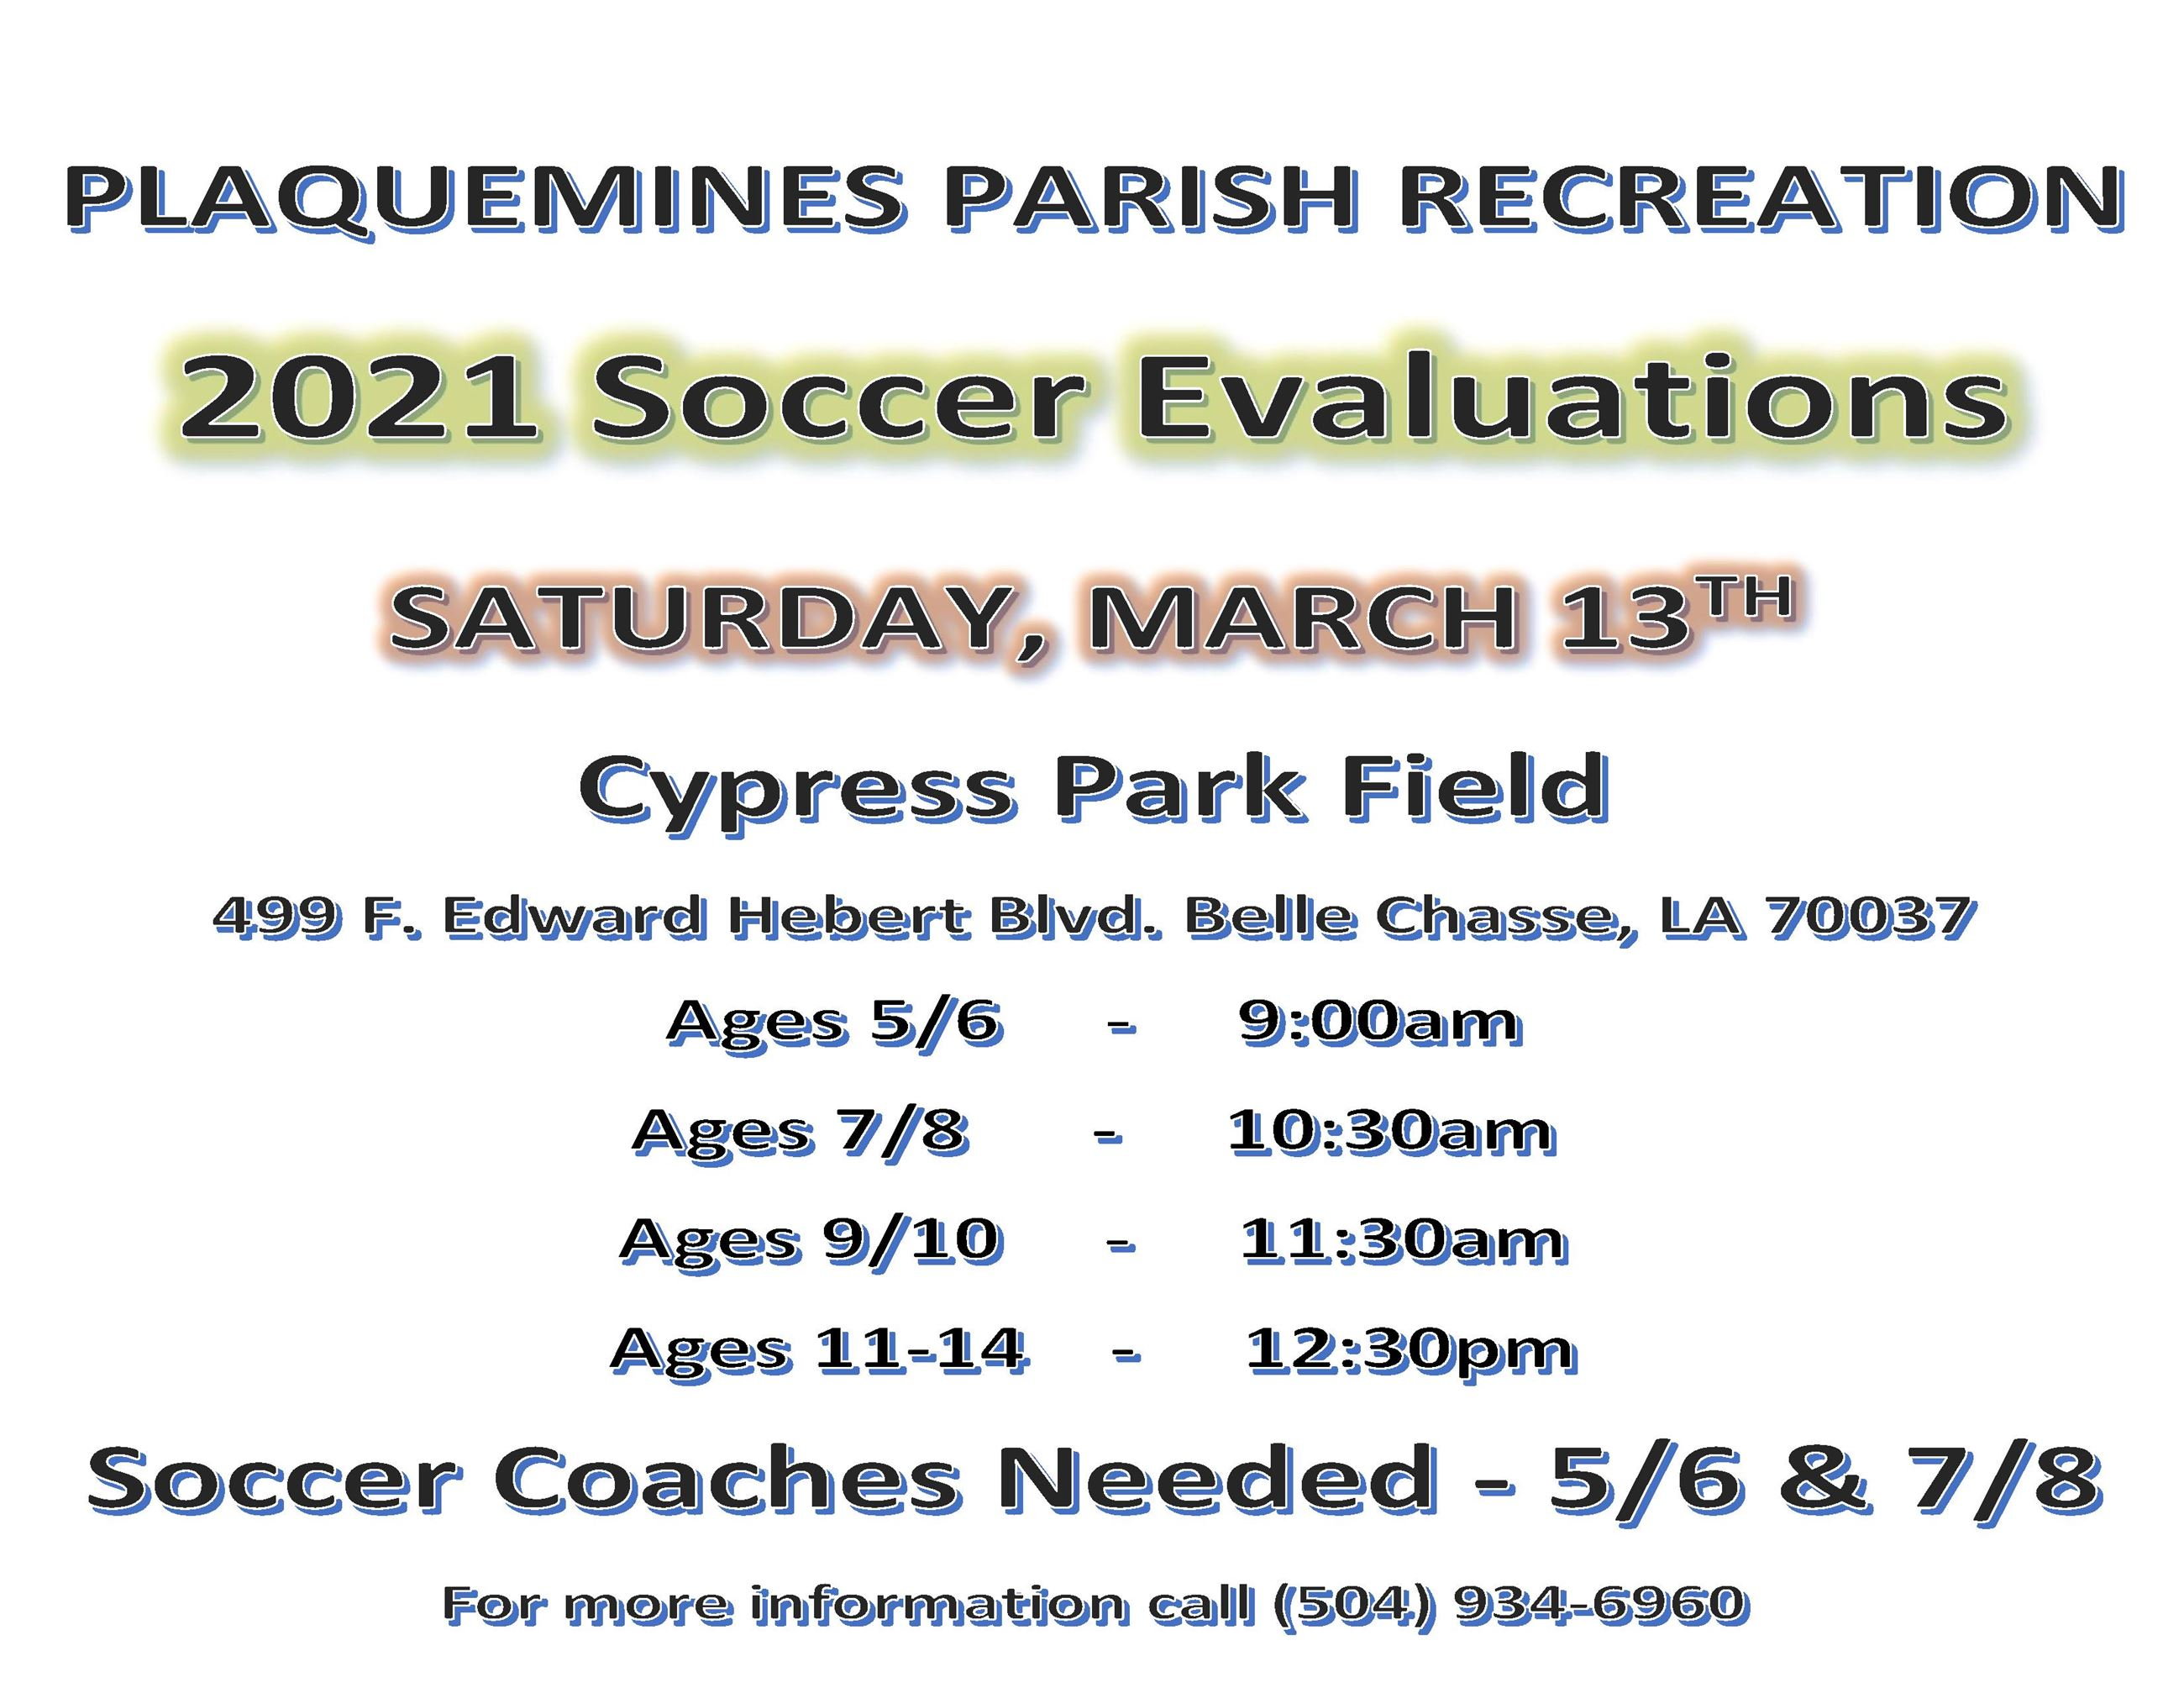 2021 Soccer Evaluations